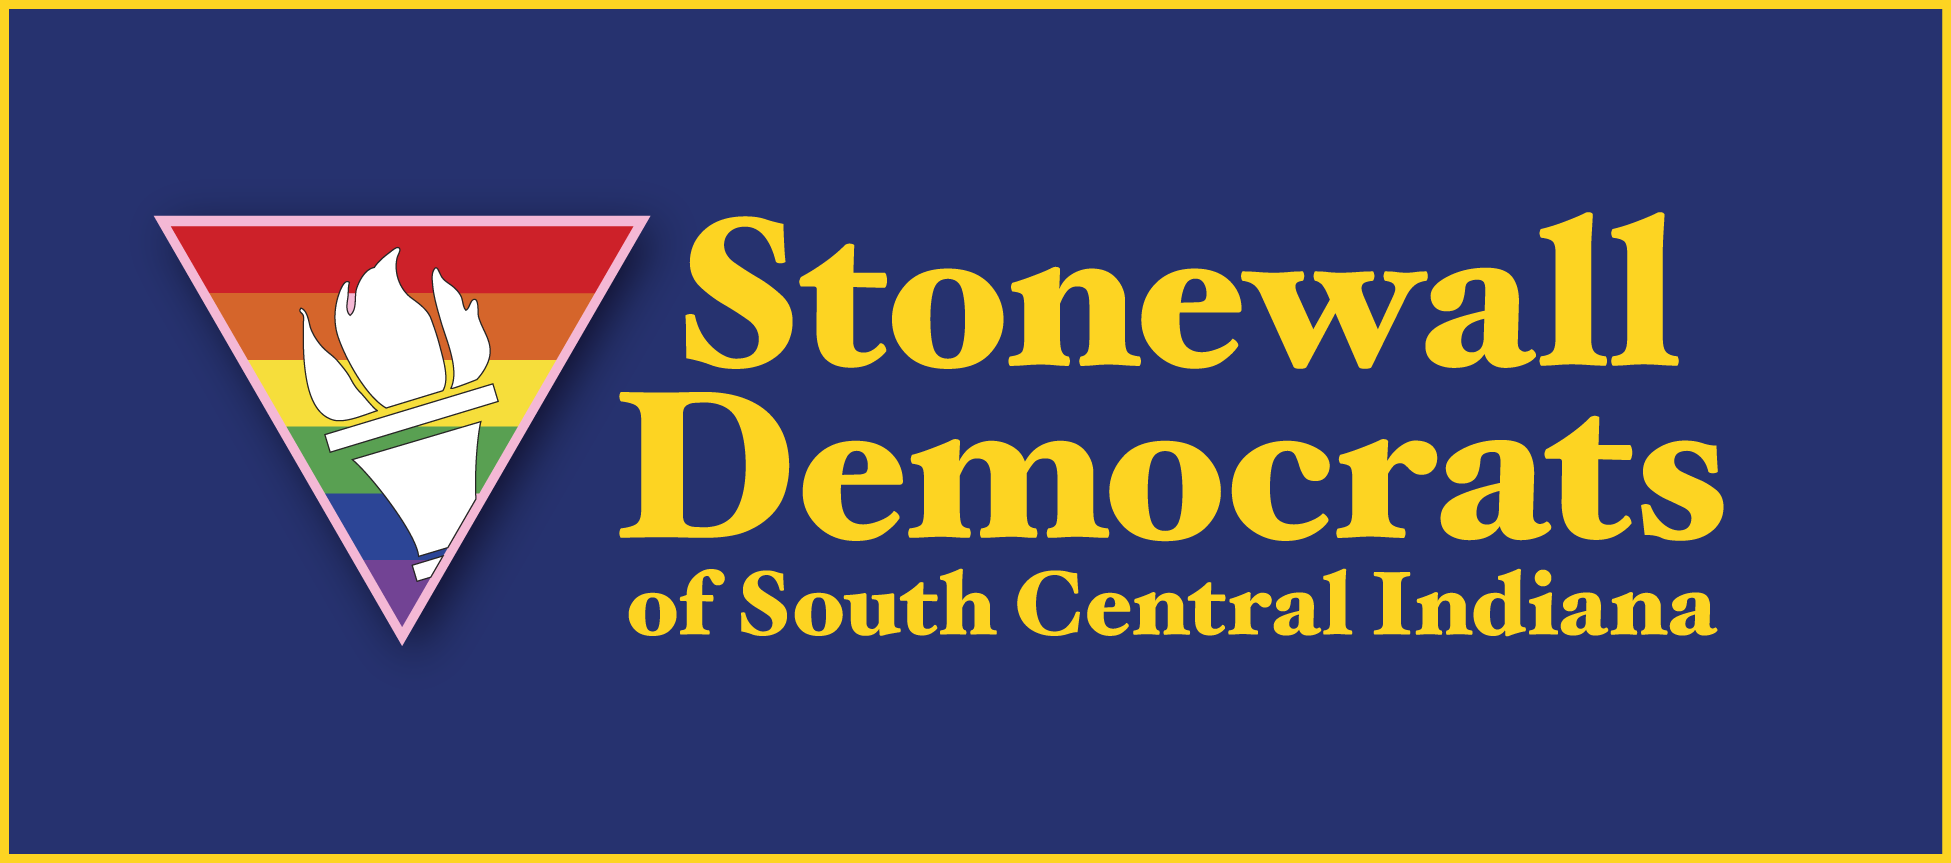 Stonewall Democrats of South Central Indiana